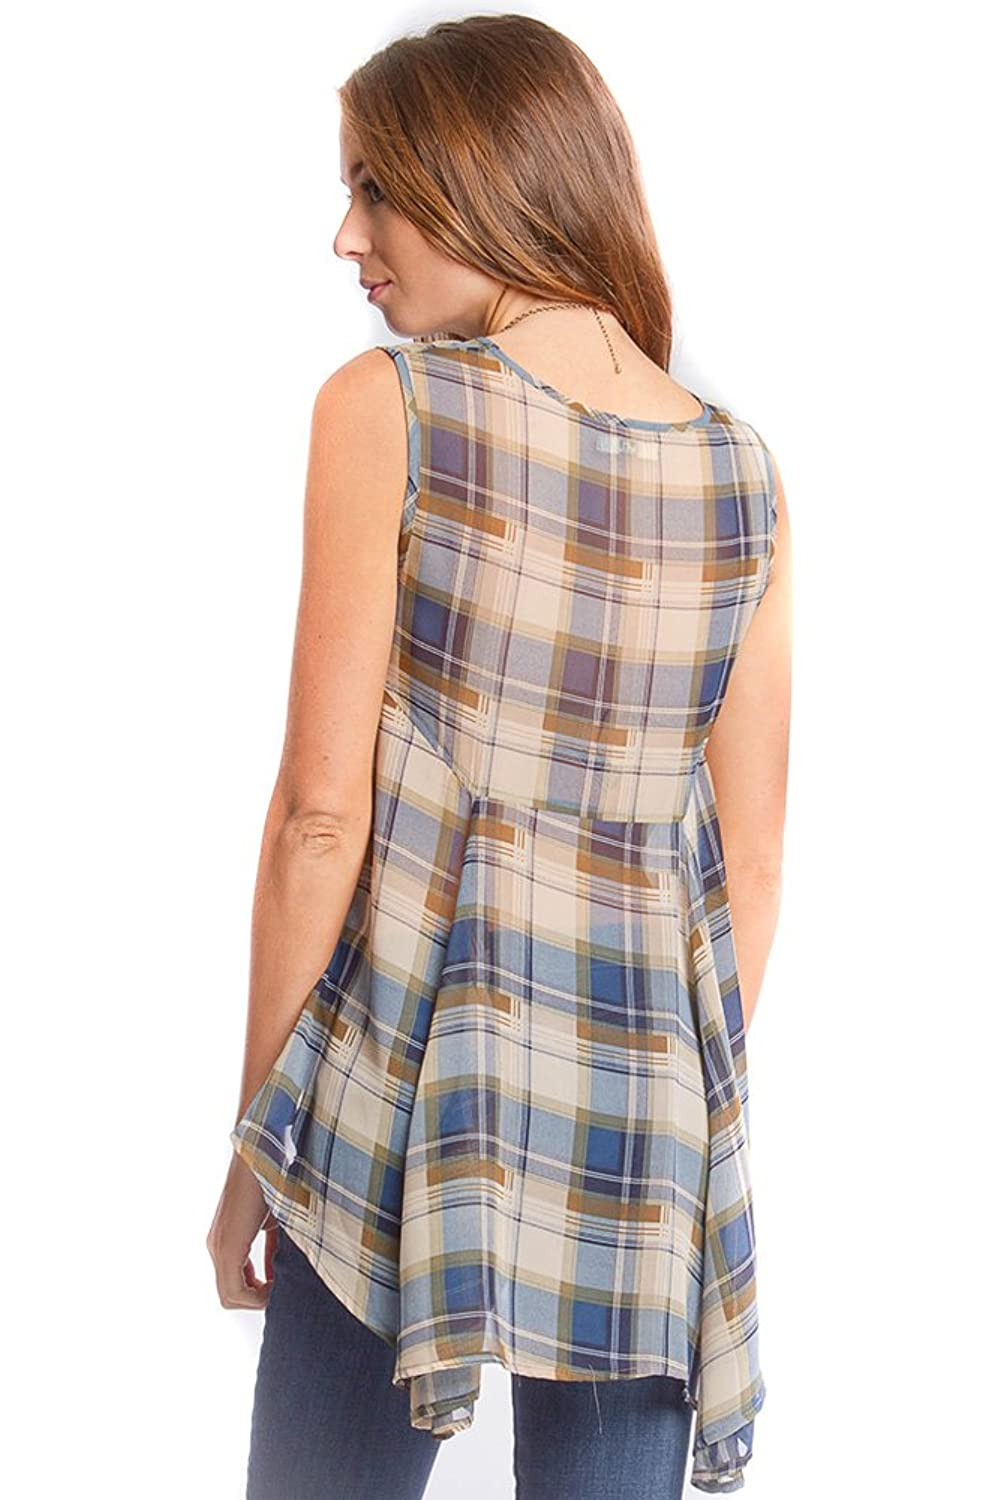 She + Sky Women's Sleevless High-Low Plaid Print Top